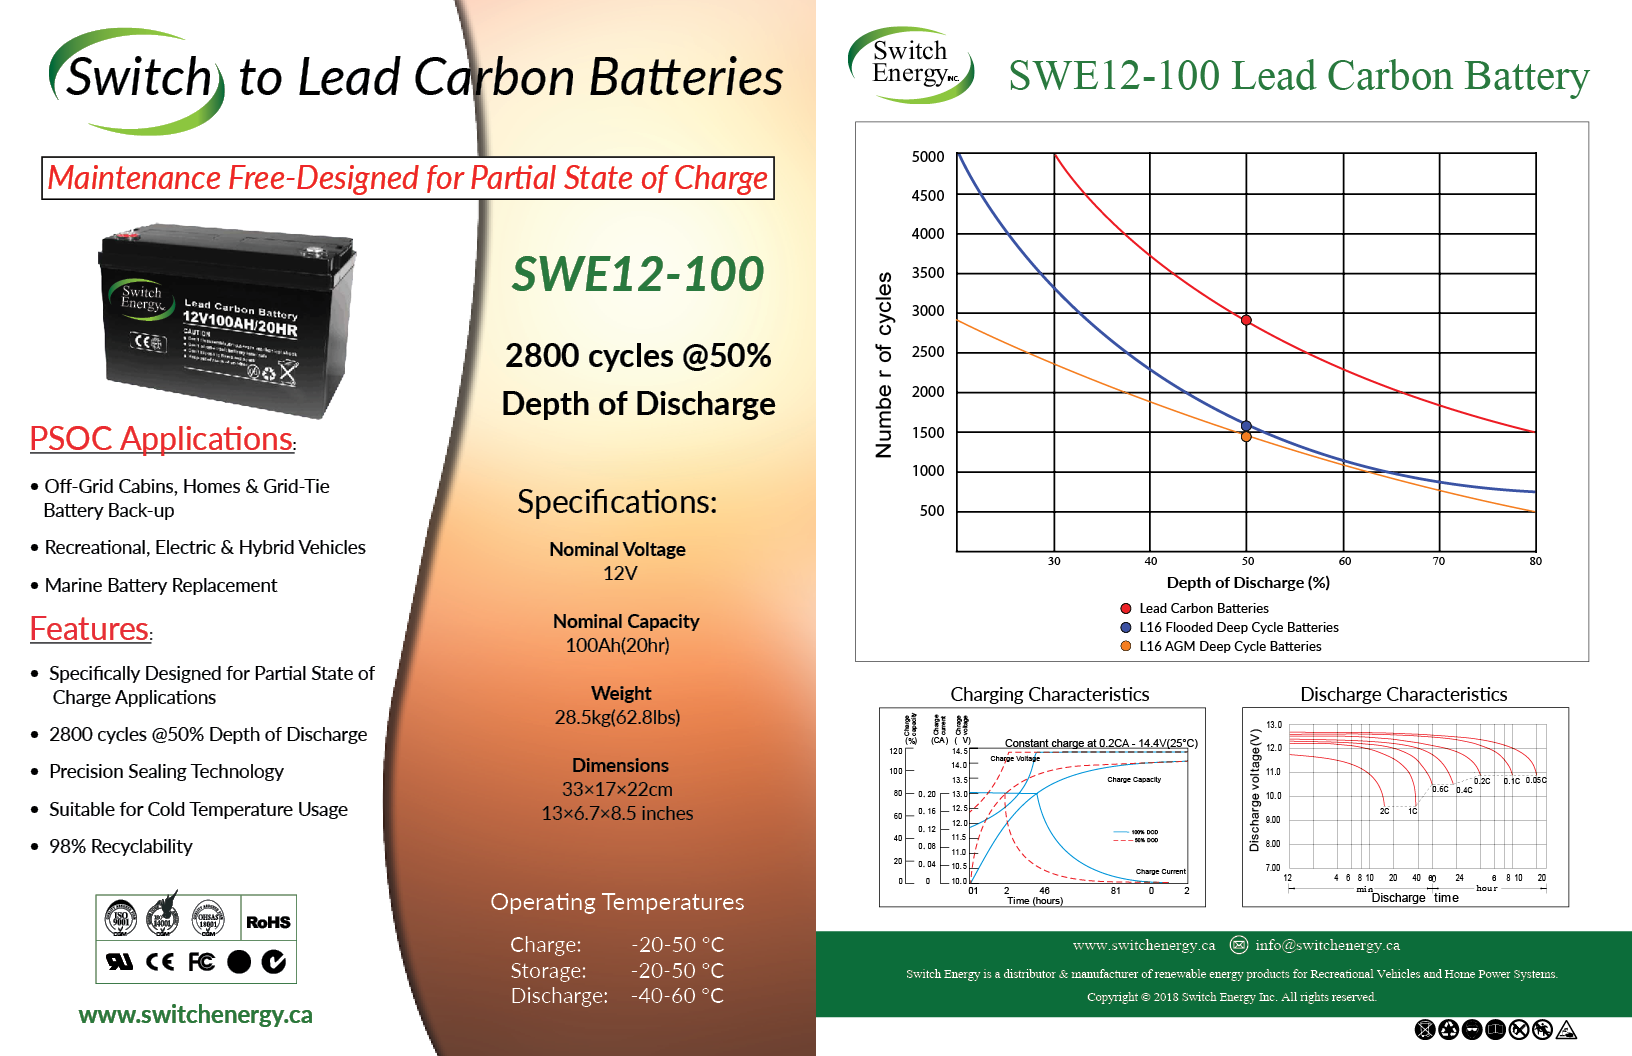 12V-100Ah lead carbon batteries